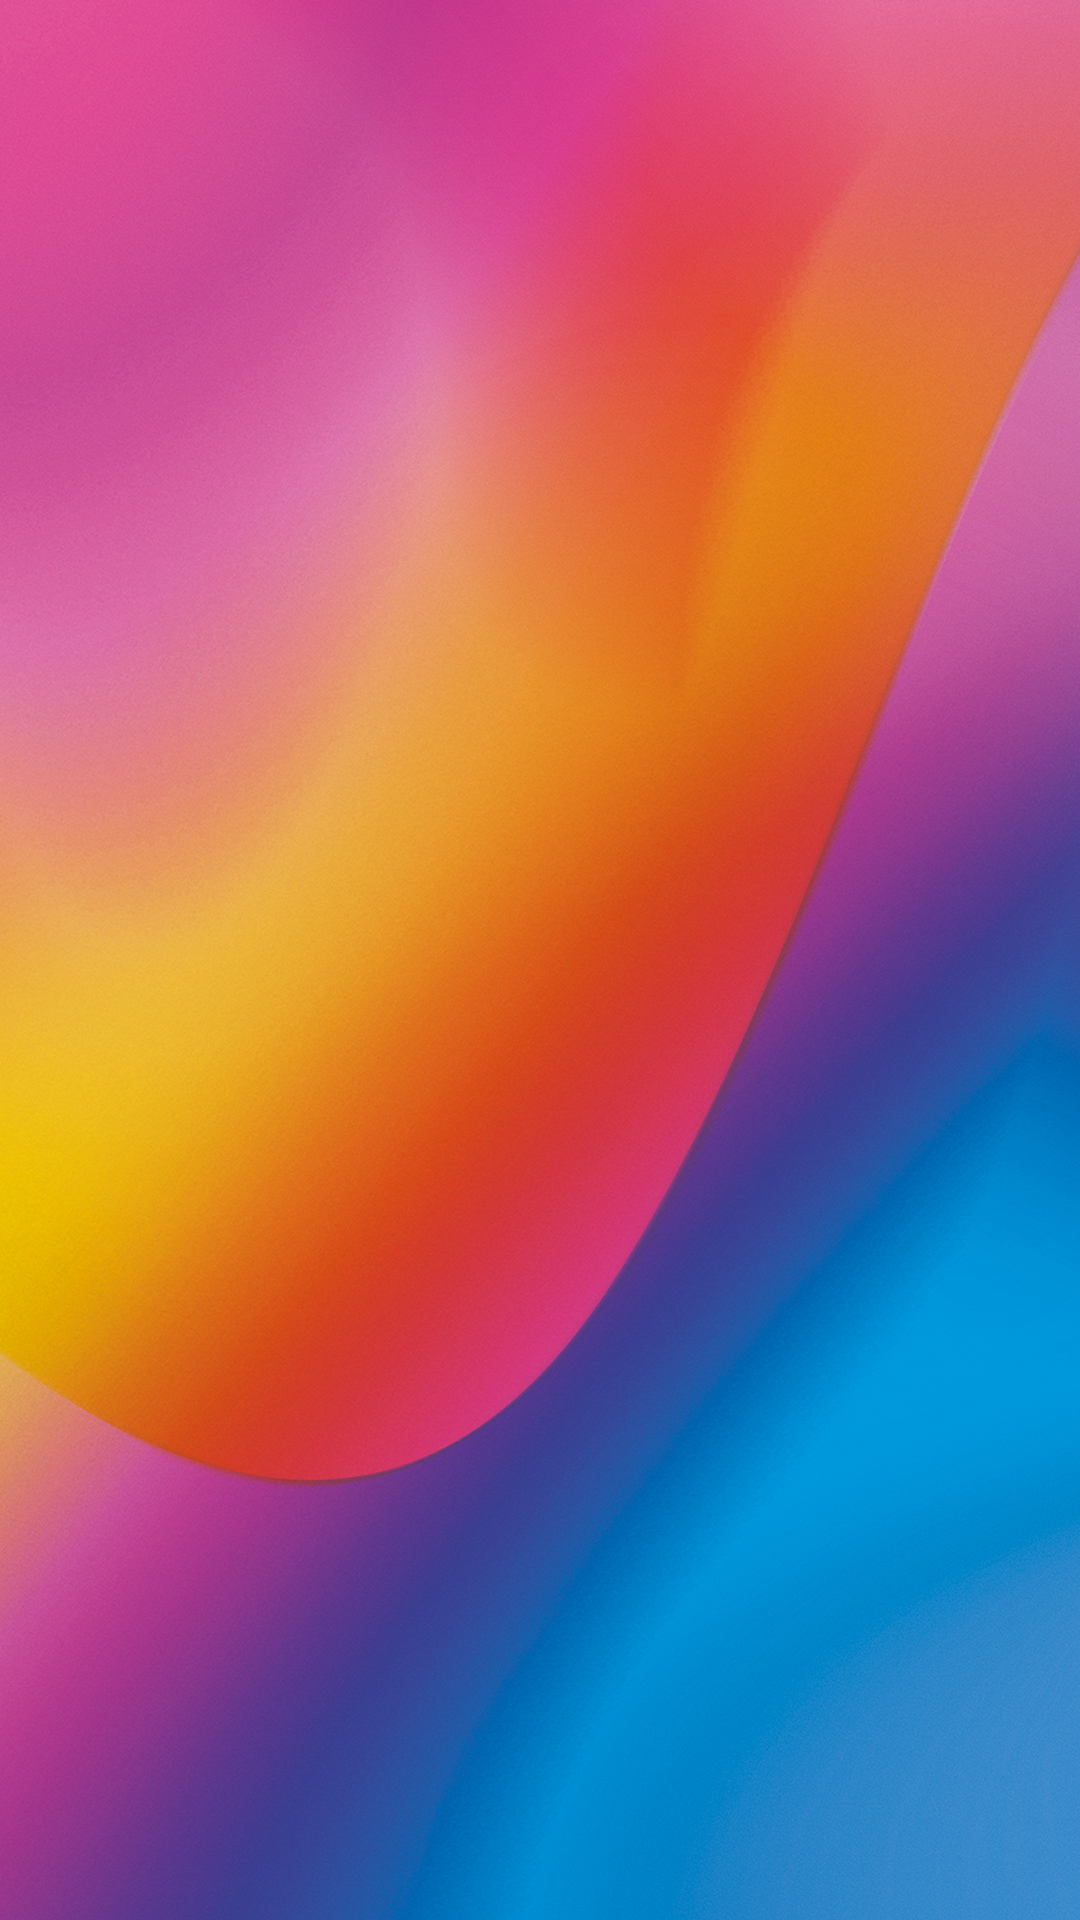 ... Lenovo K3 Note Wallpapers by Lenovo K6 Note Wallpaper With Abstract Color Lights Hd ...